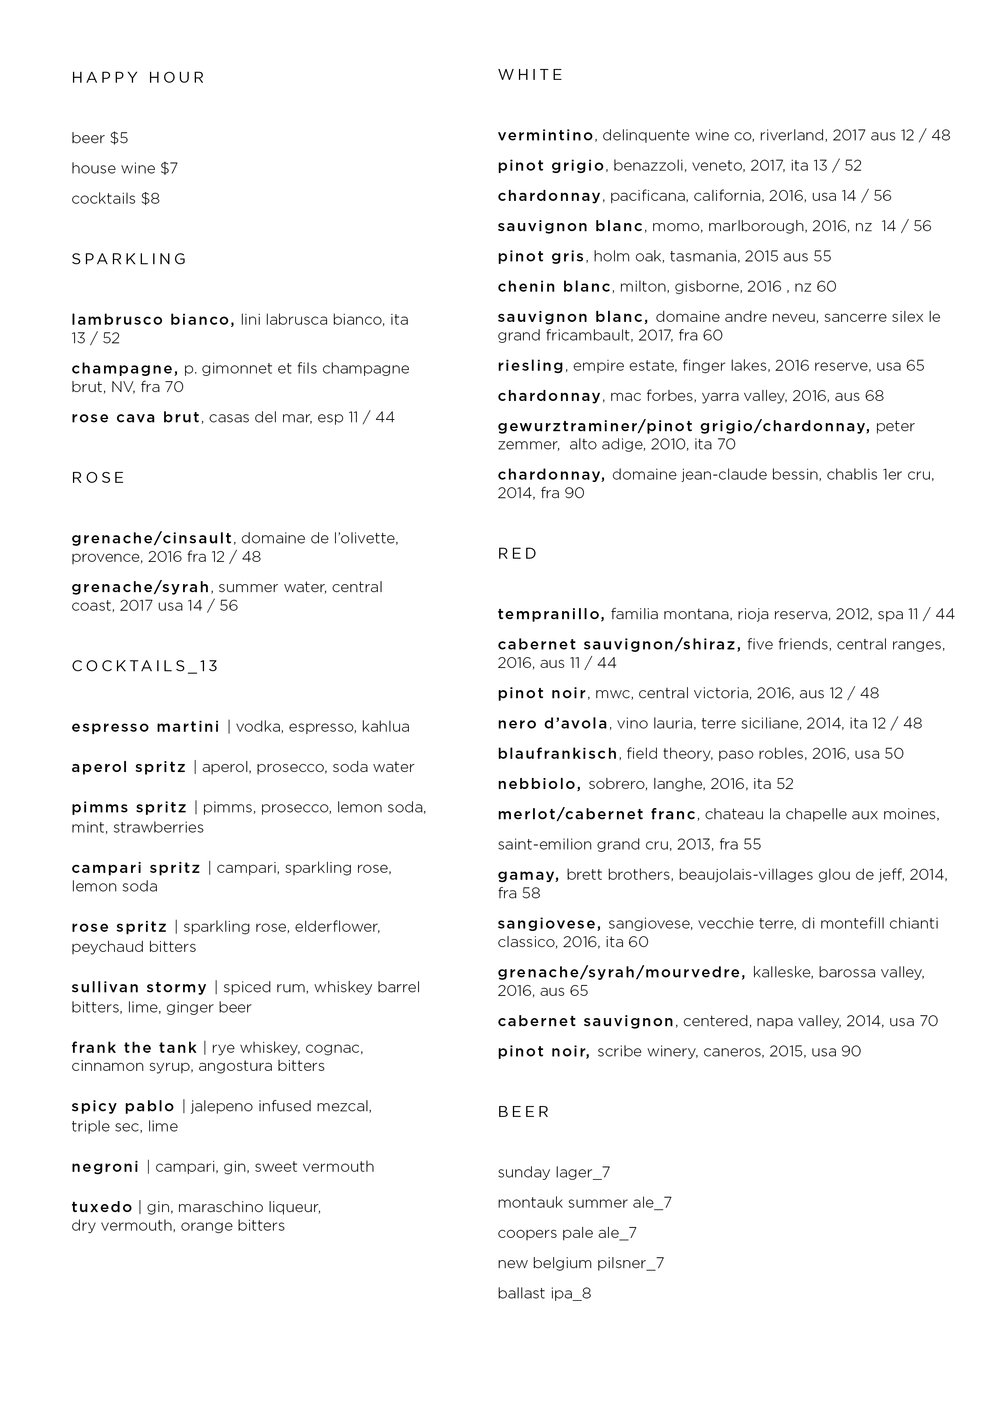 NIGHT MENU_7 JUNE2.jpg